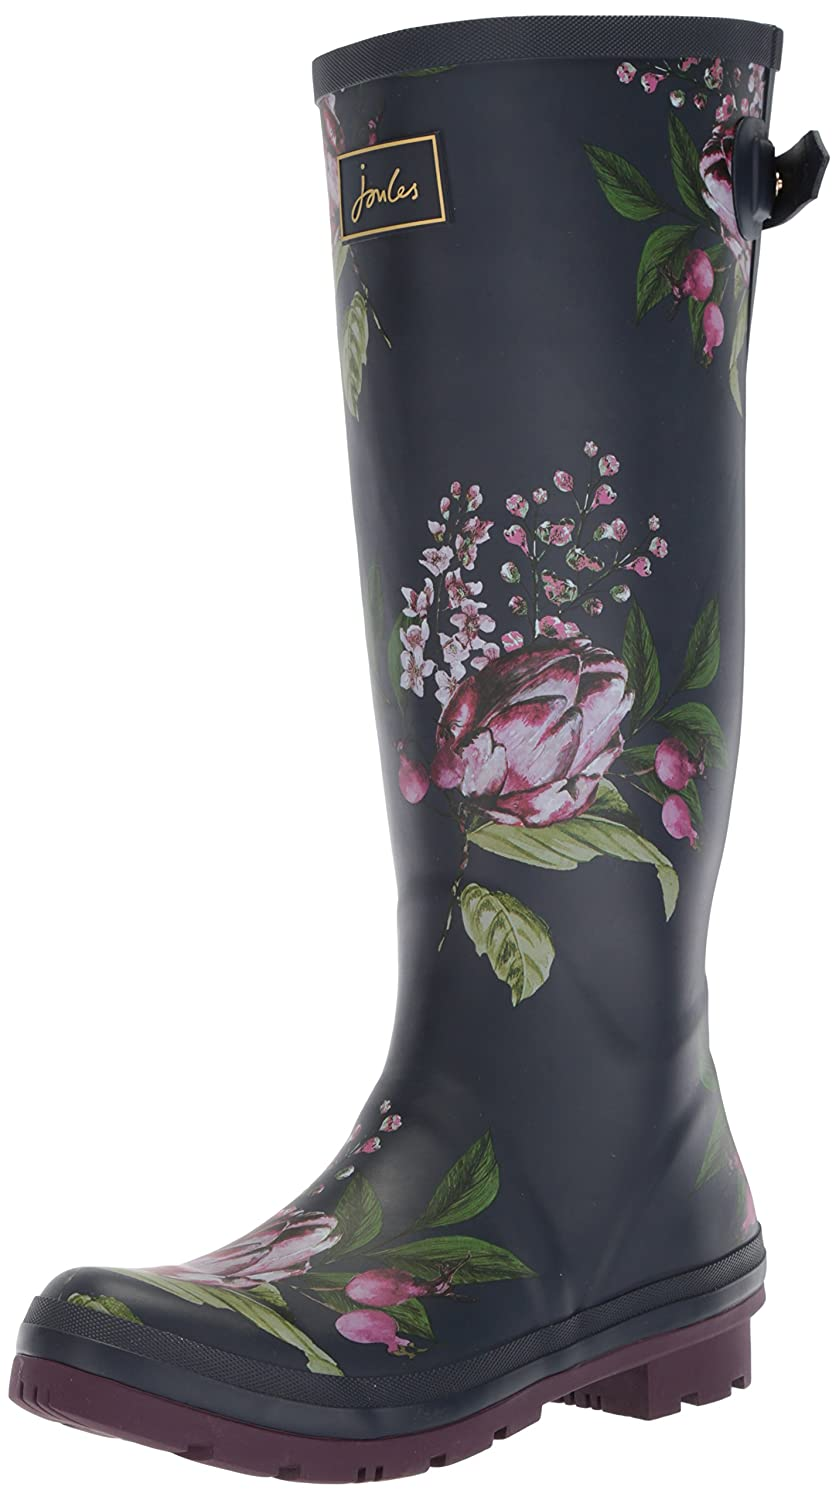 Joules Women's Wellyprint Rain Boot B073XJMH8P 7 B(M) US|French Navy Artichoke Floral